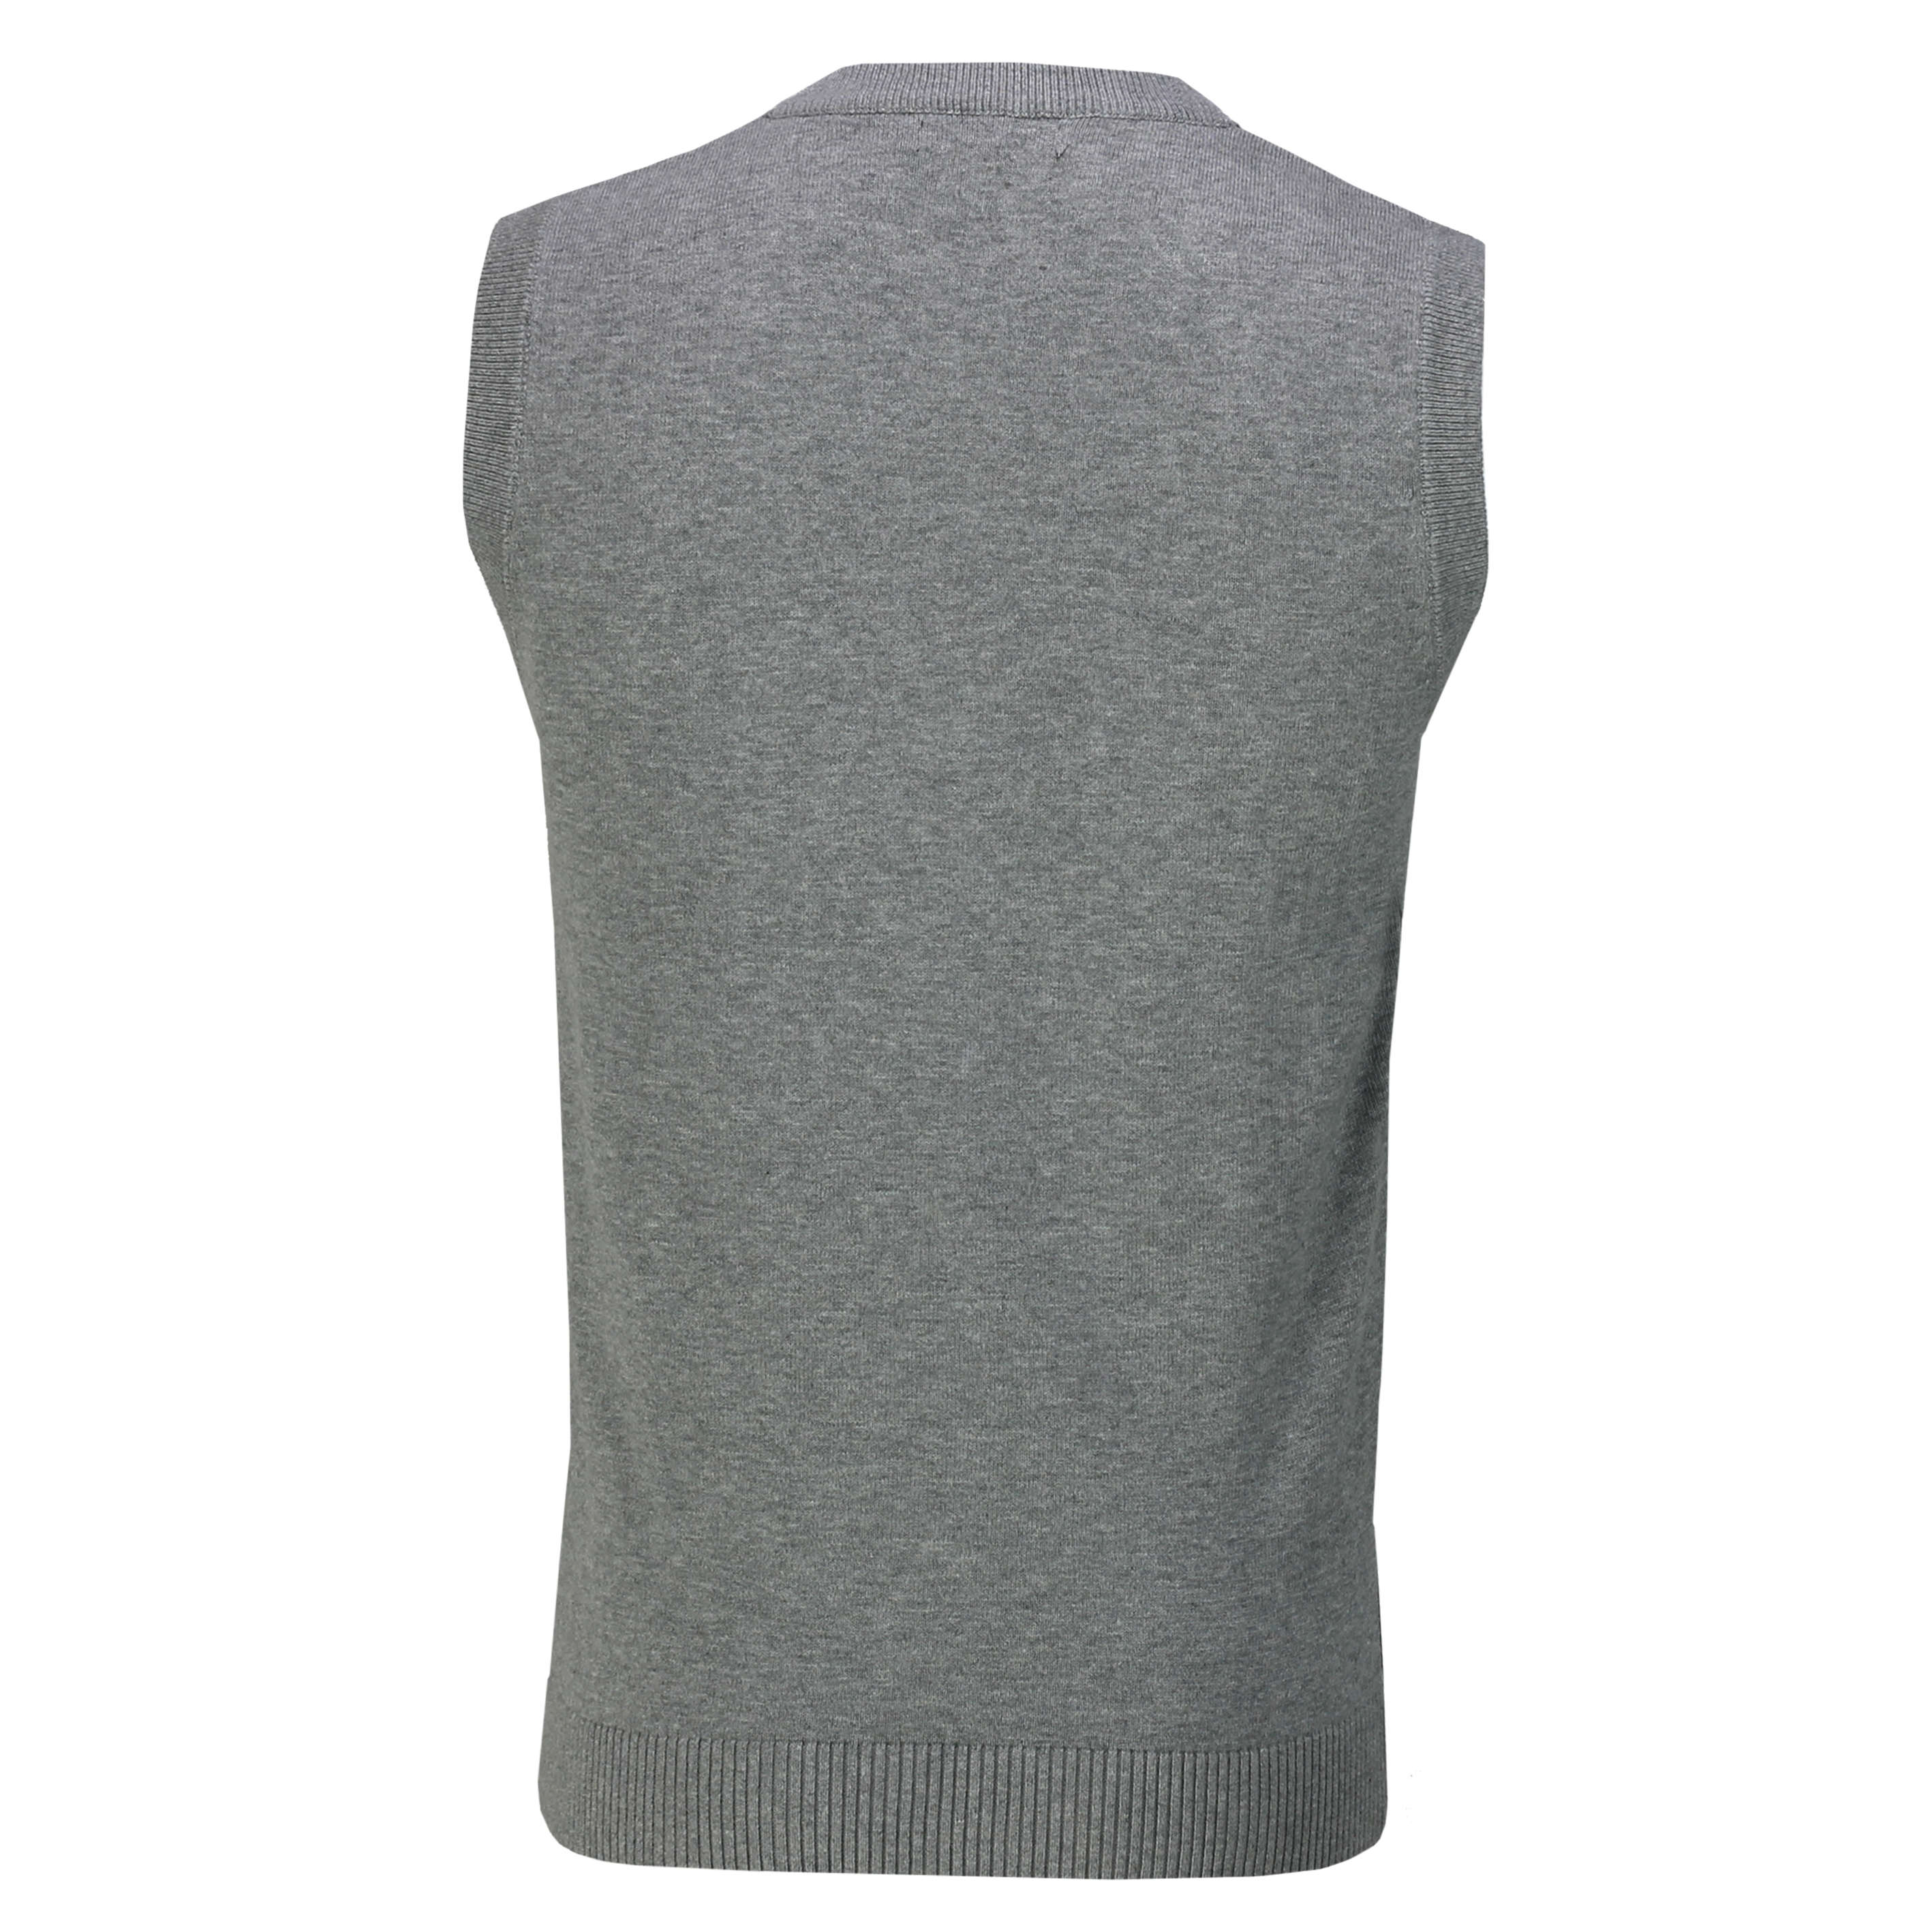 Homme Sans Manches Pull Col V Pull Smart Casual Slim Fit Tank Top Jersey Gilet